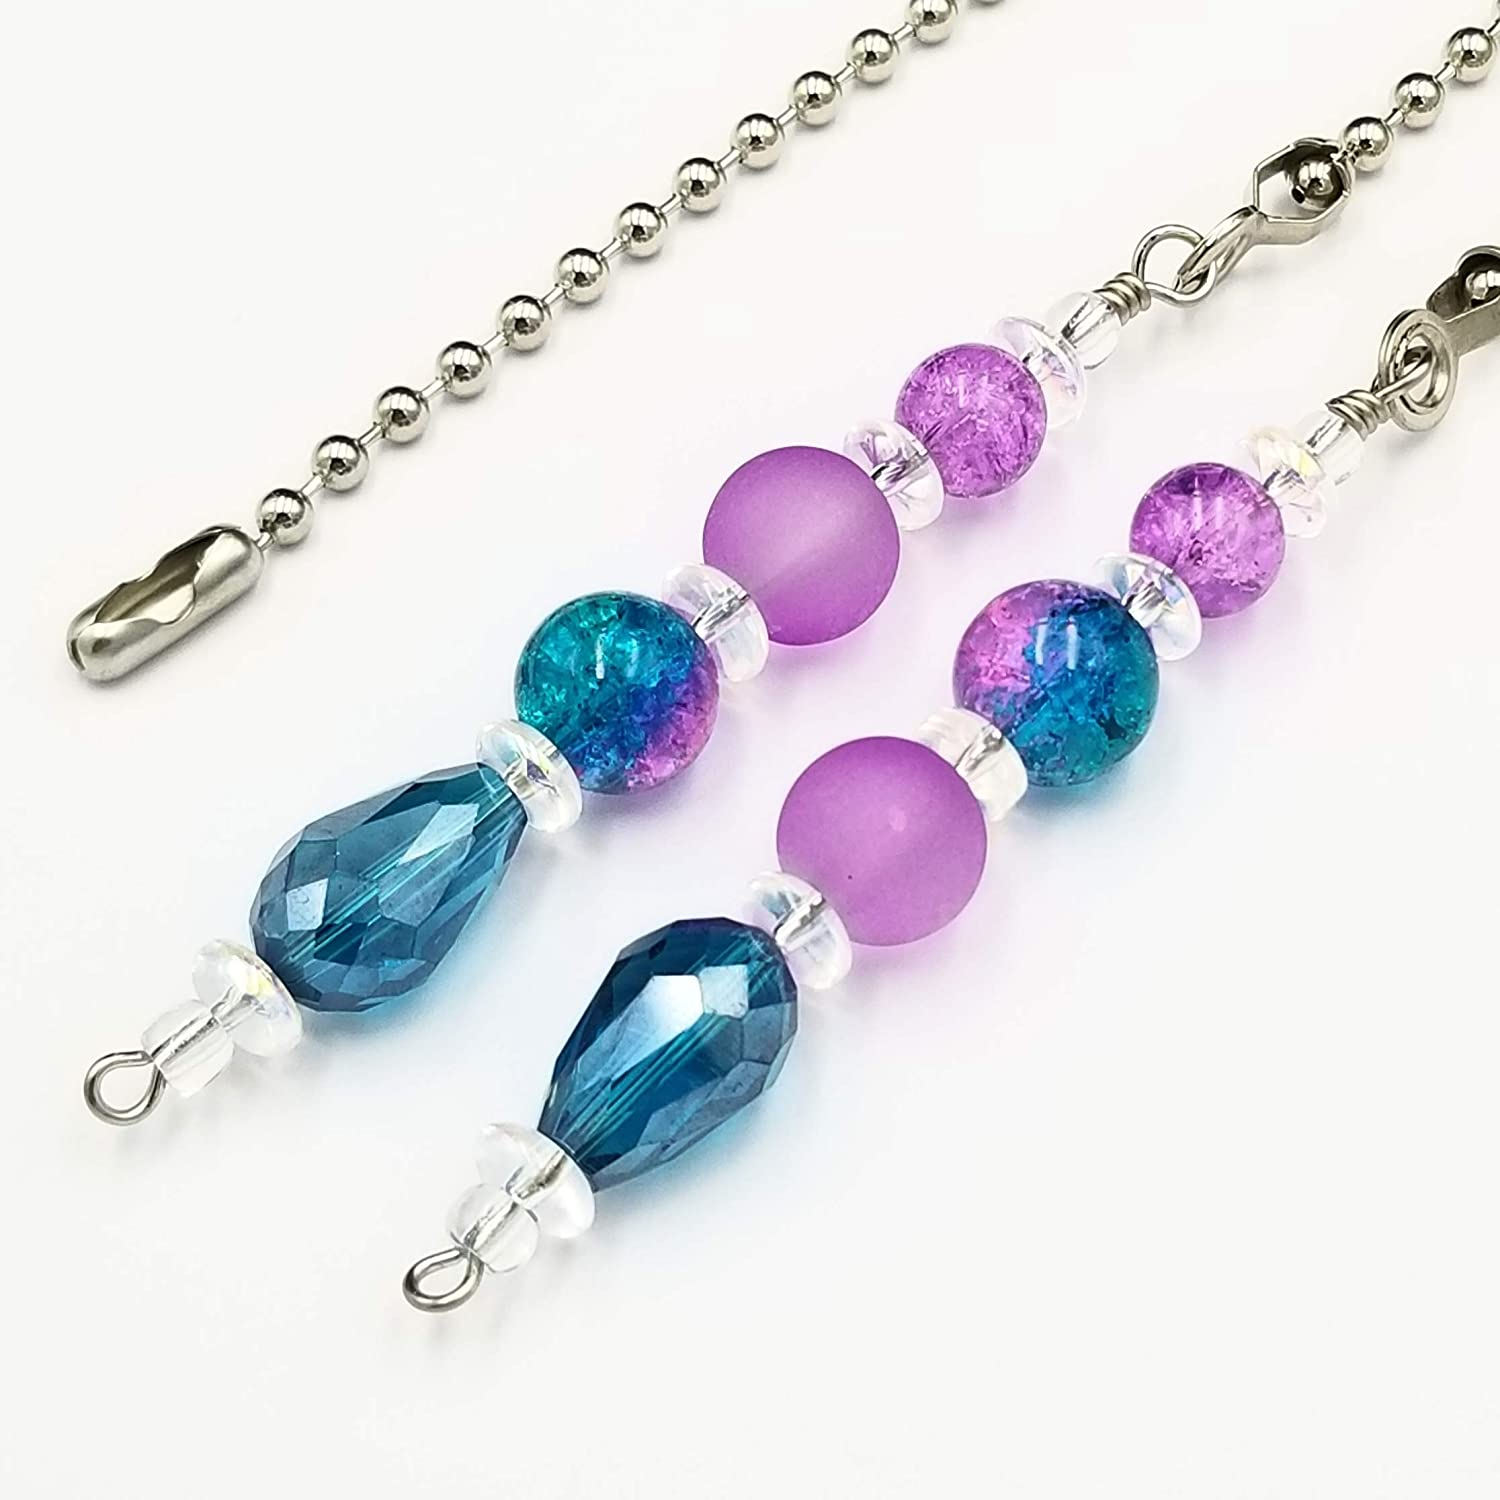 Ceiling Fan and Light Latest item Pull Chain Teal a Set Purple Max 46% OFF - Crackle